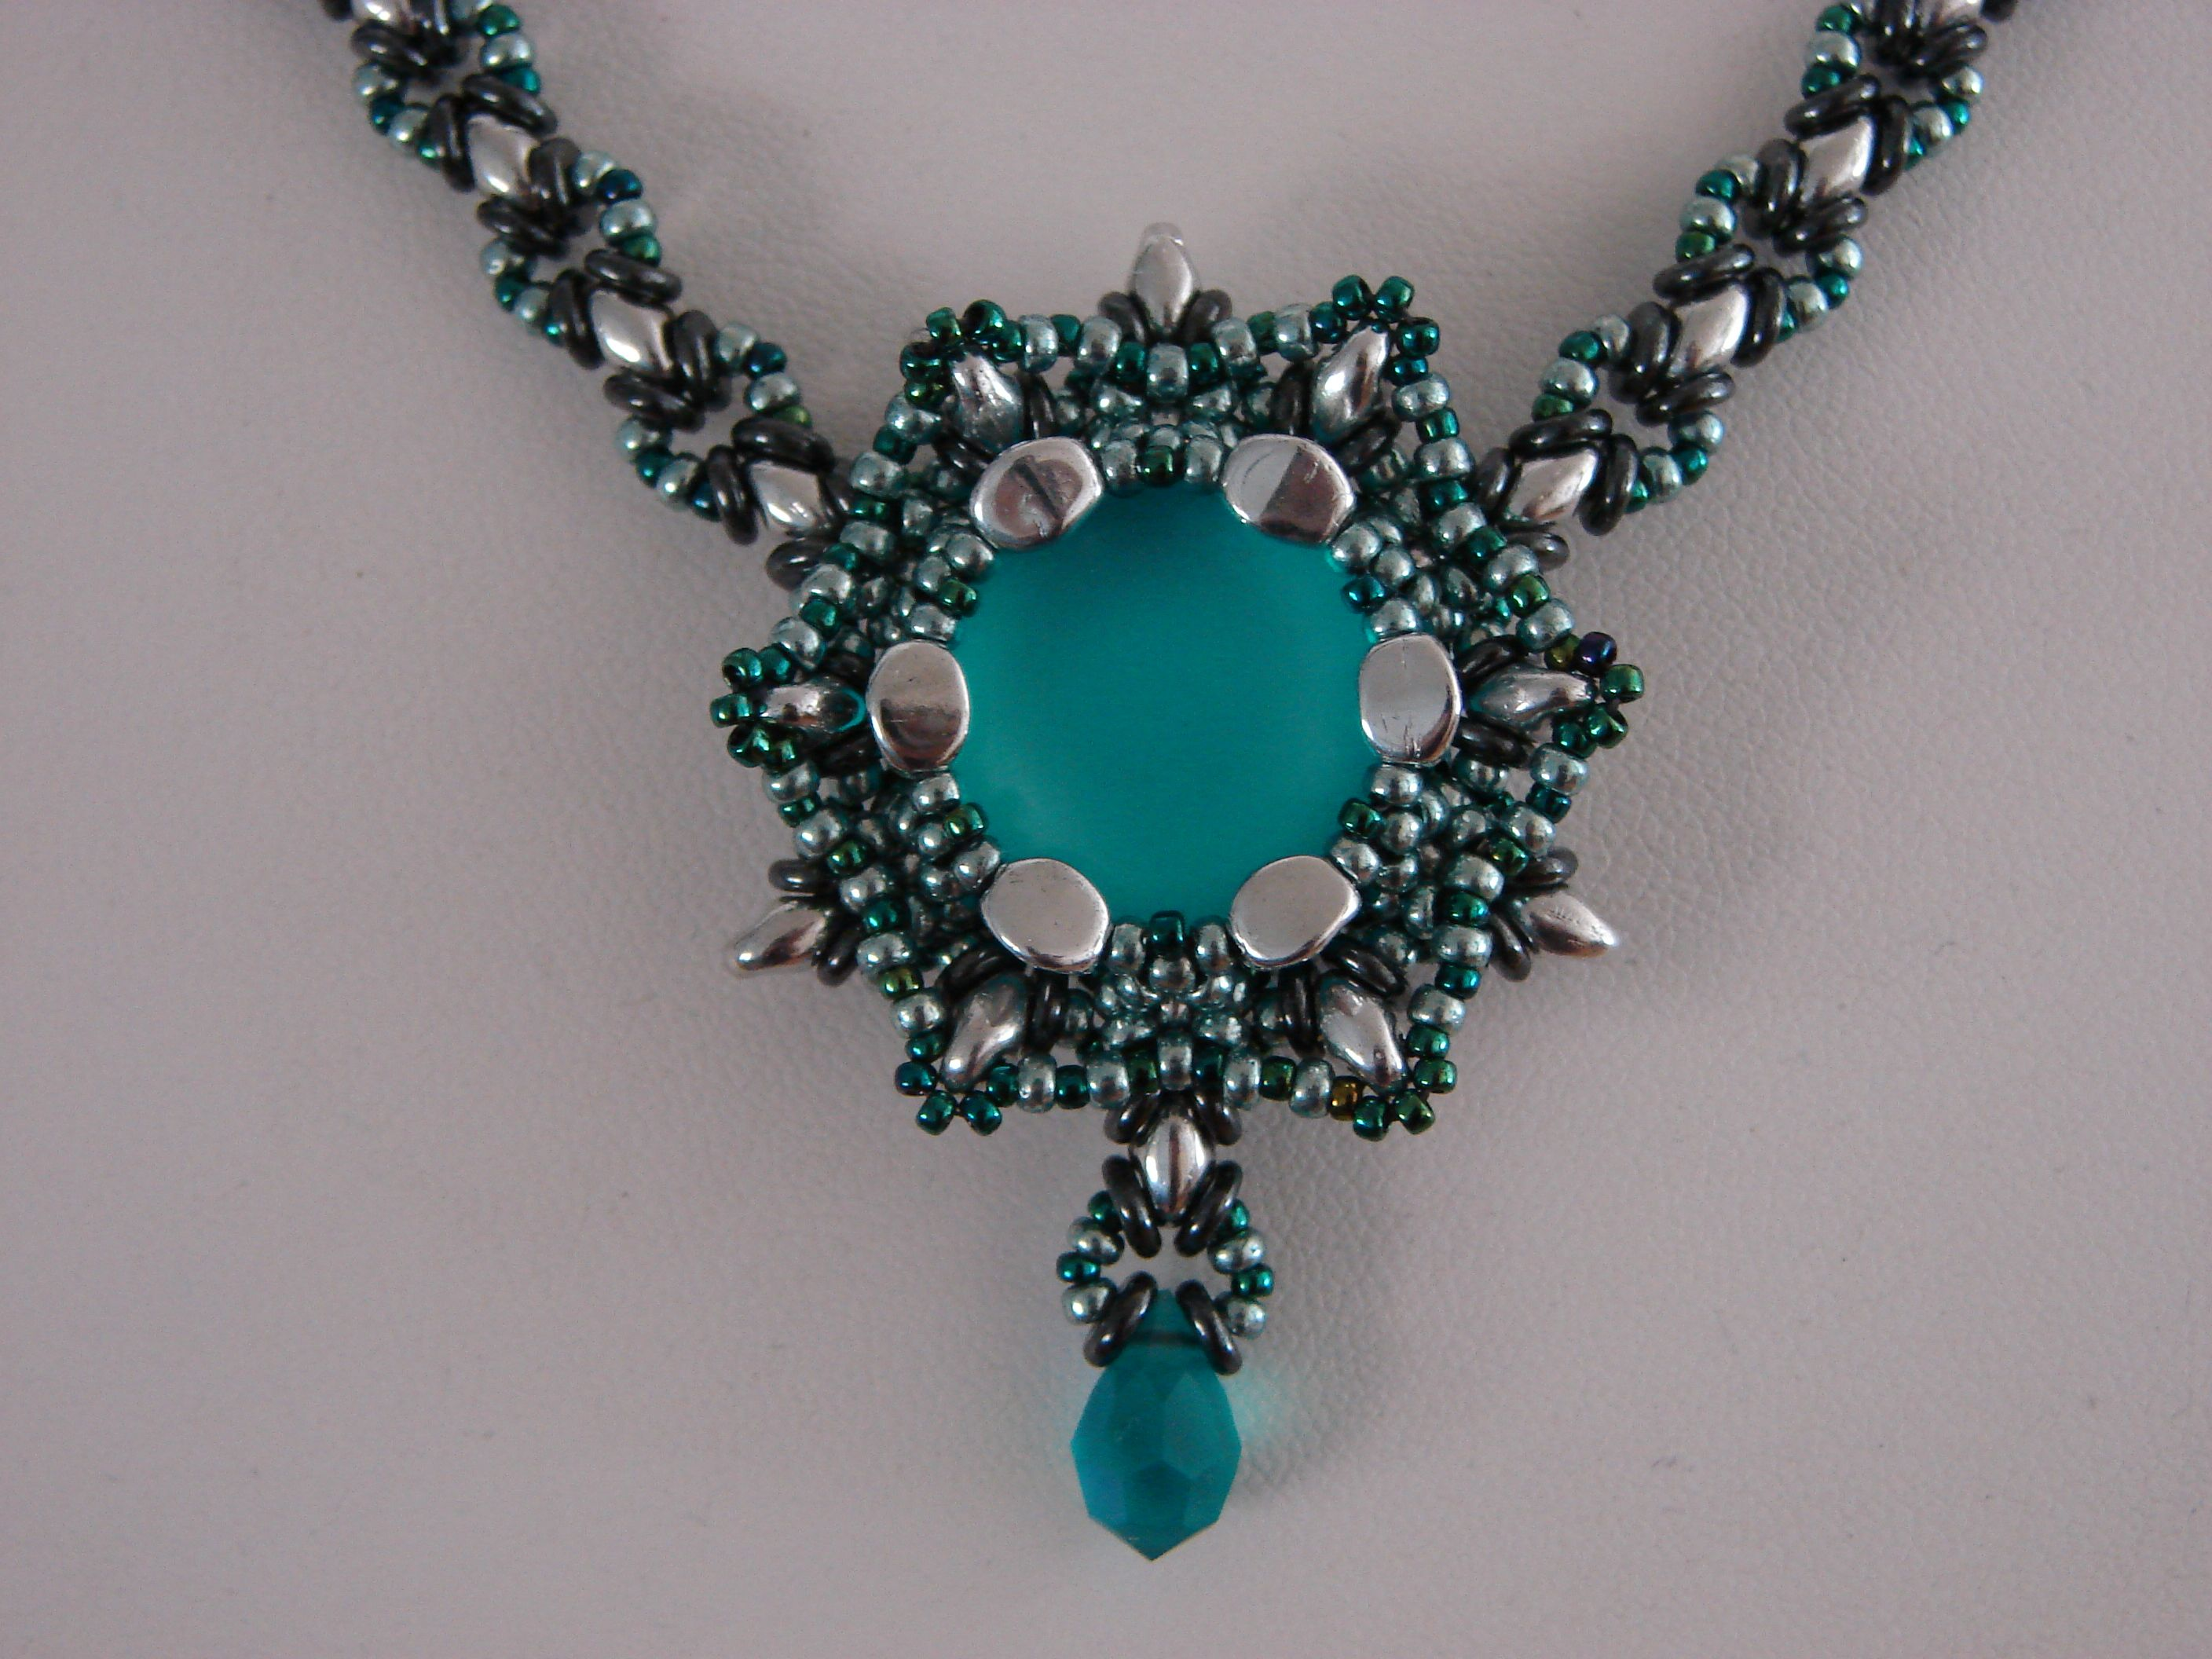 Beadwoven pendant and necklace. In the middle is a blue zircon lunasoft cabochon. Pinch beads, superduo's, 11/0 and 15/0 seed beads and O-beads are used in this piece. A pattern will be made for this one in time.